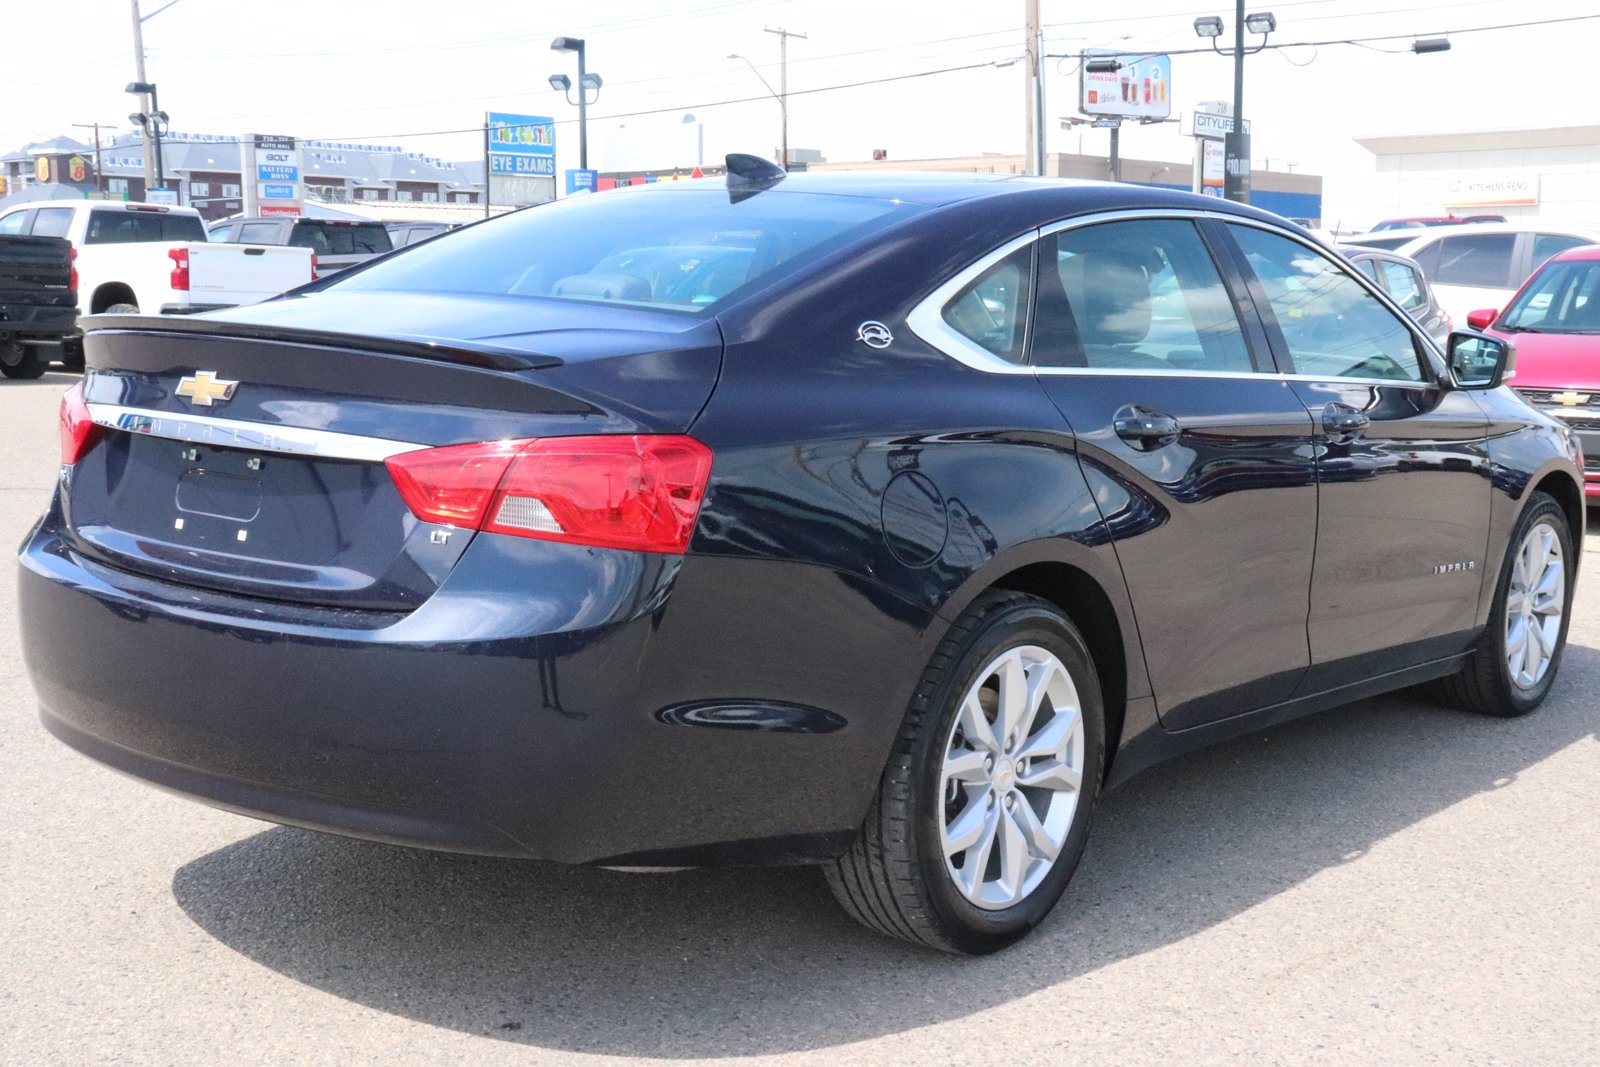 Certified Pre-Owned 2019 Chevrolet Impala LT- Leather, Sunroof, Remote Start